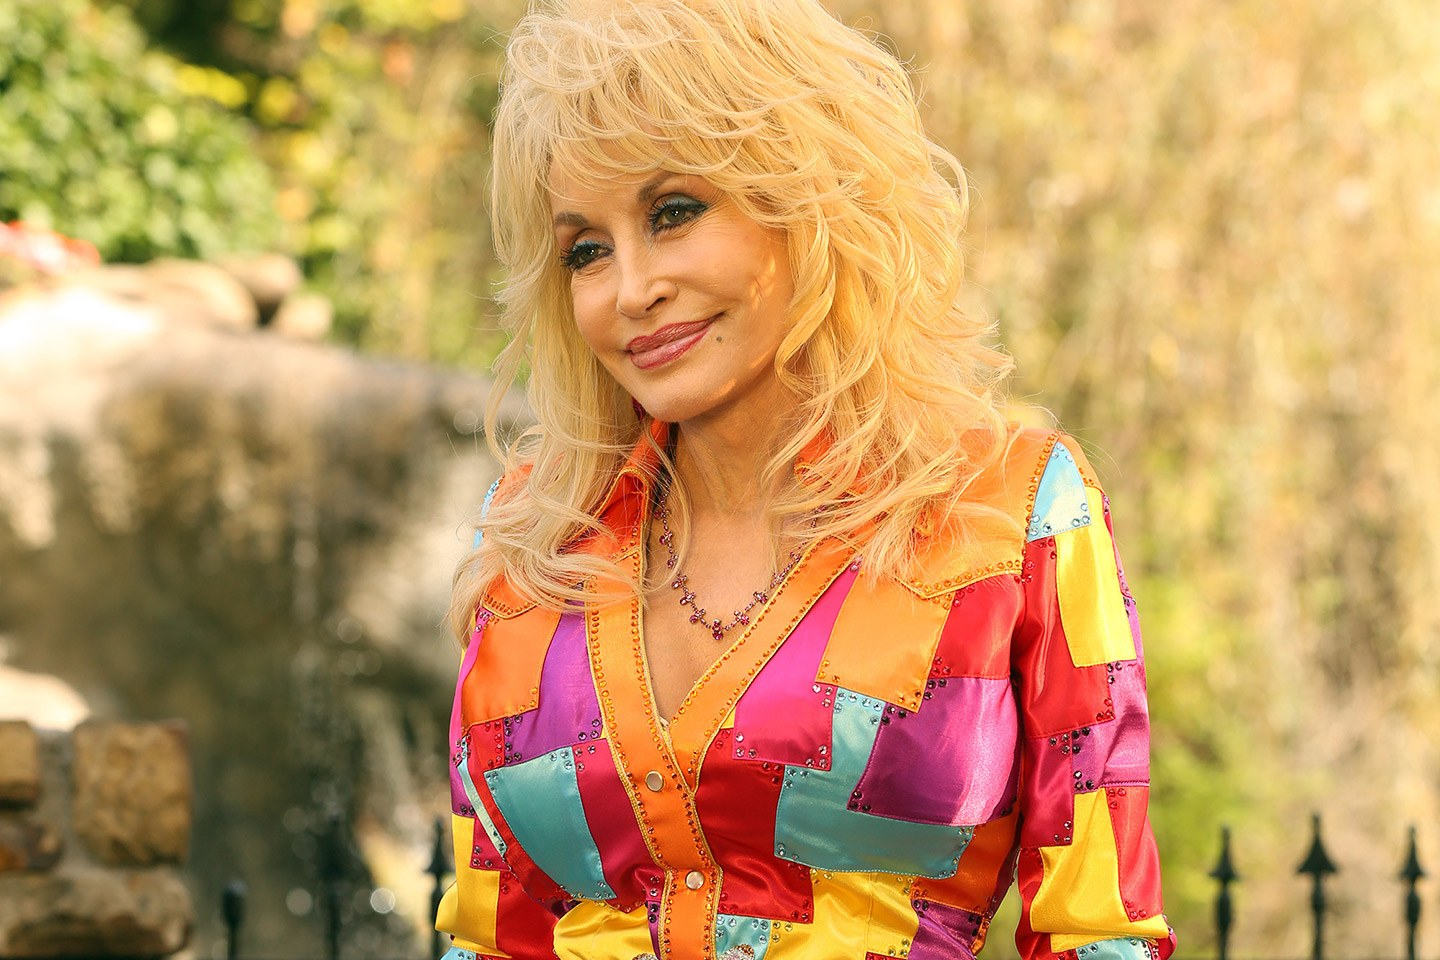 t-dolly-parton-coat-of-many-colors-02.jpg